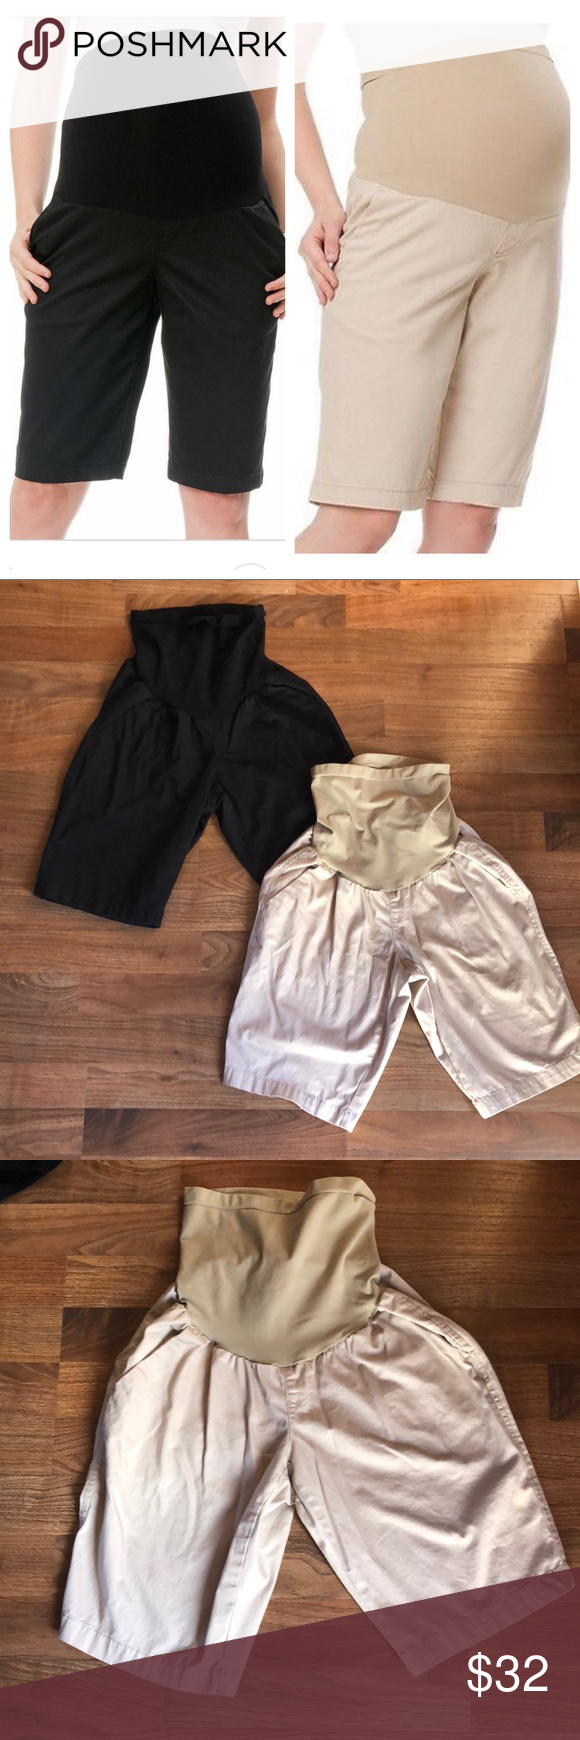 2d348c0fb644d Oh Baby Motherhood Secret Fit Maternity Short M Includes both pairs. Both  in excellent condition, no flaws. Size medium. These are the secret fit  belly ...